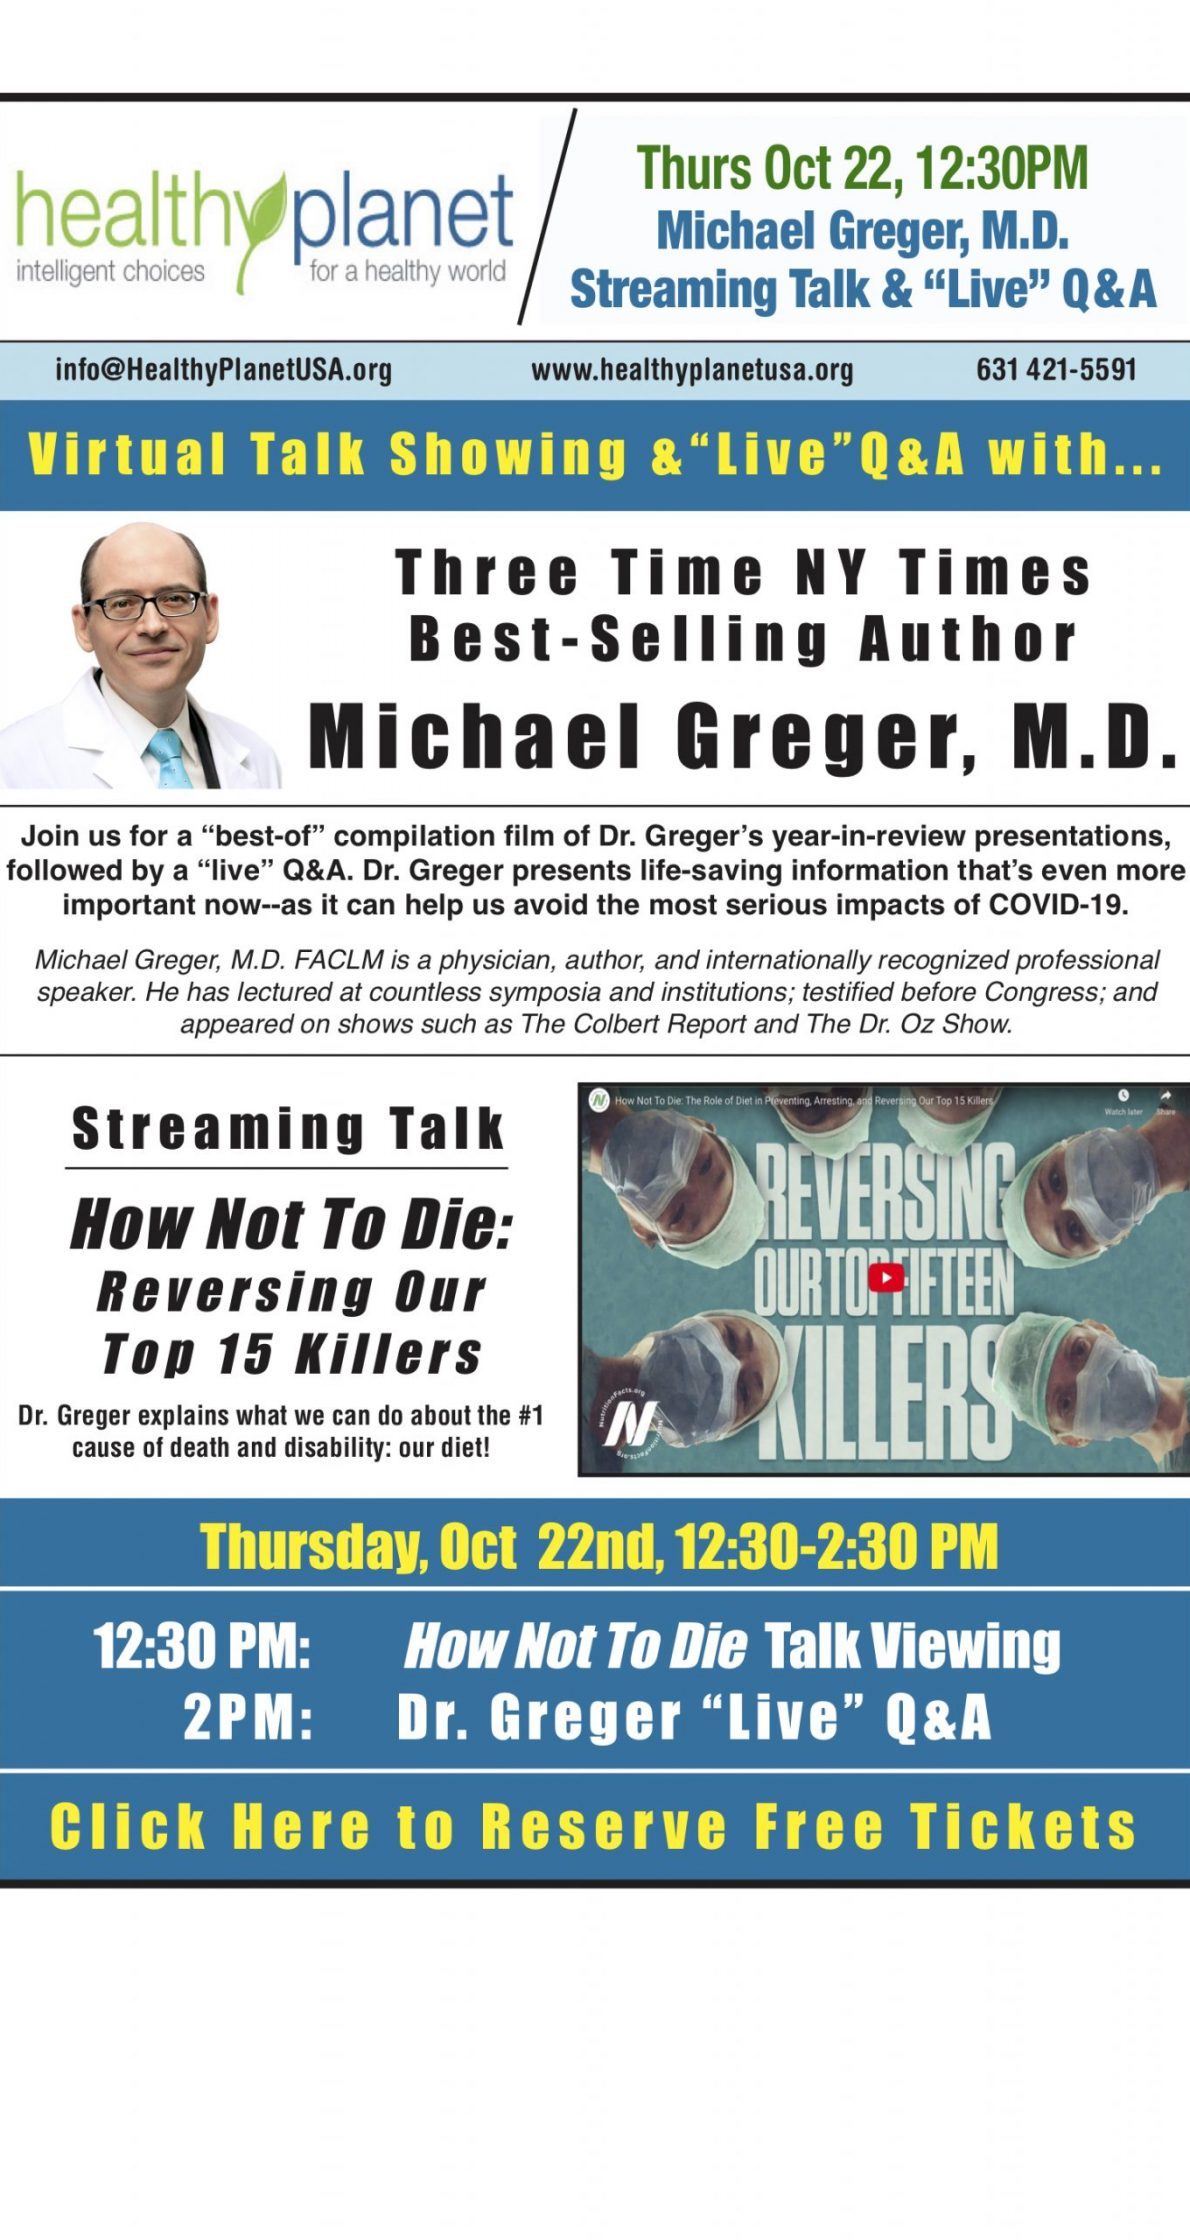 10-22-20 WEB Michael Greger & How Not To Die Film